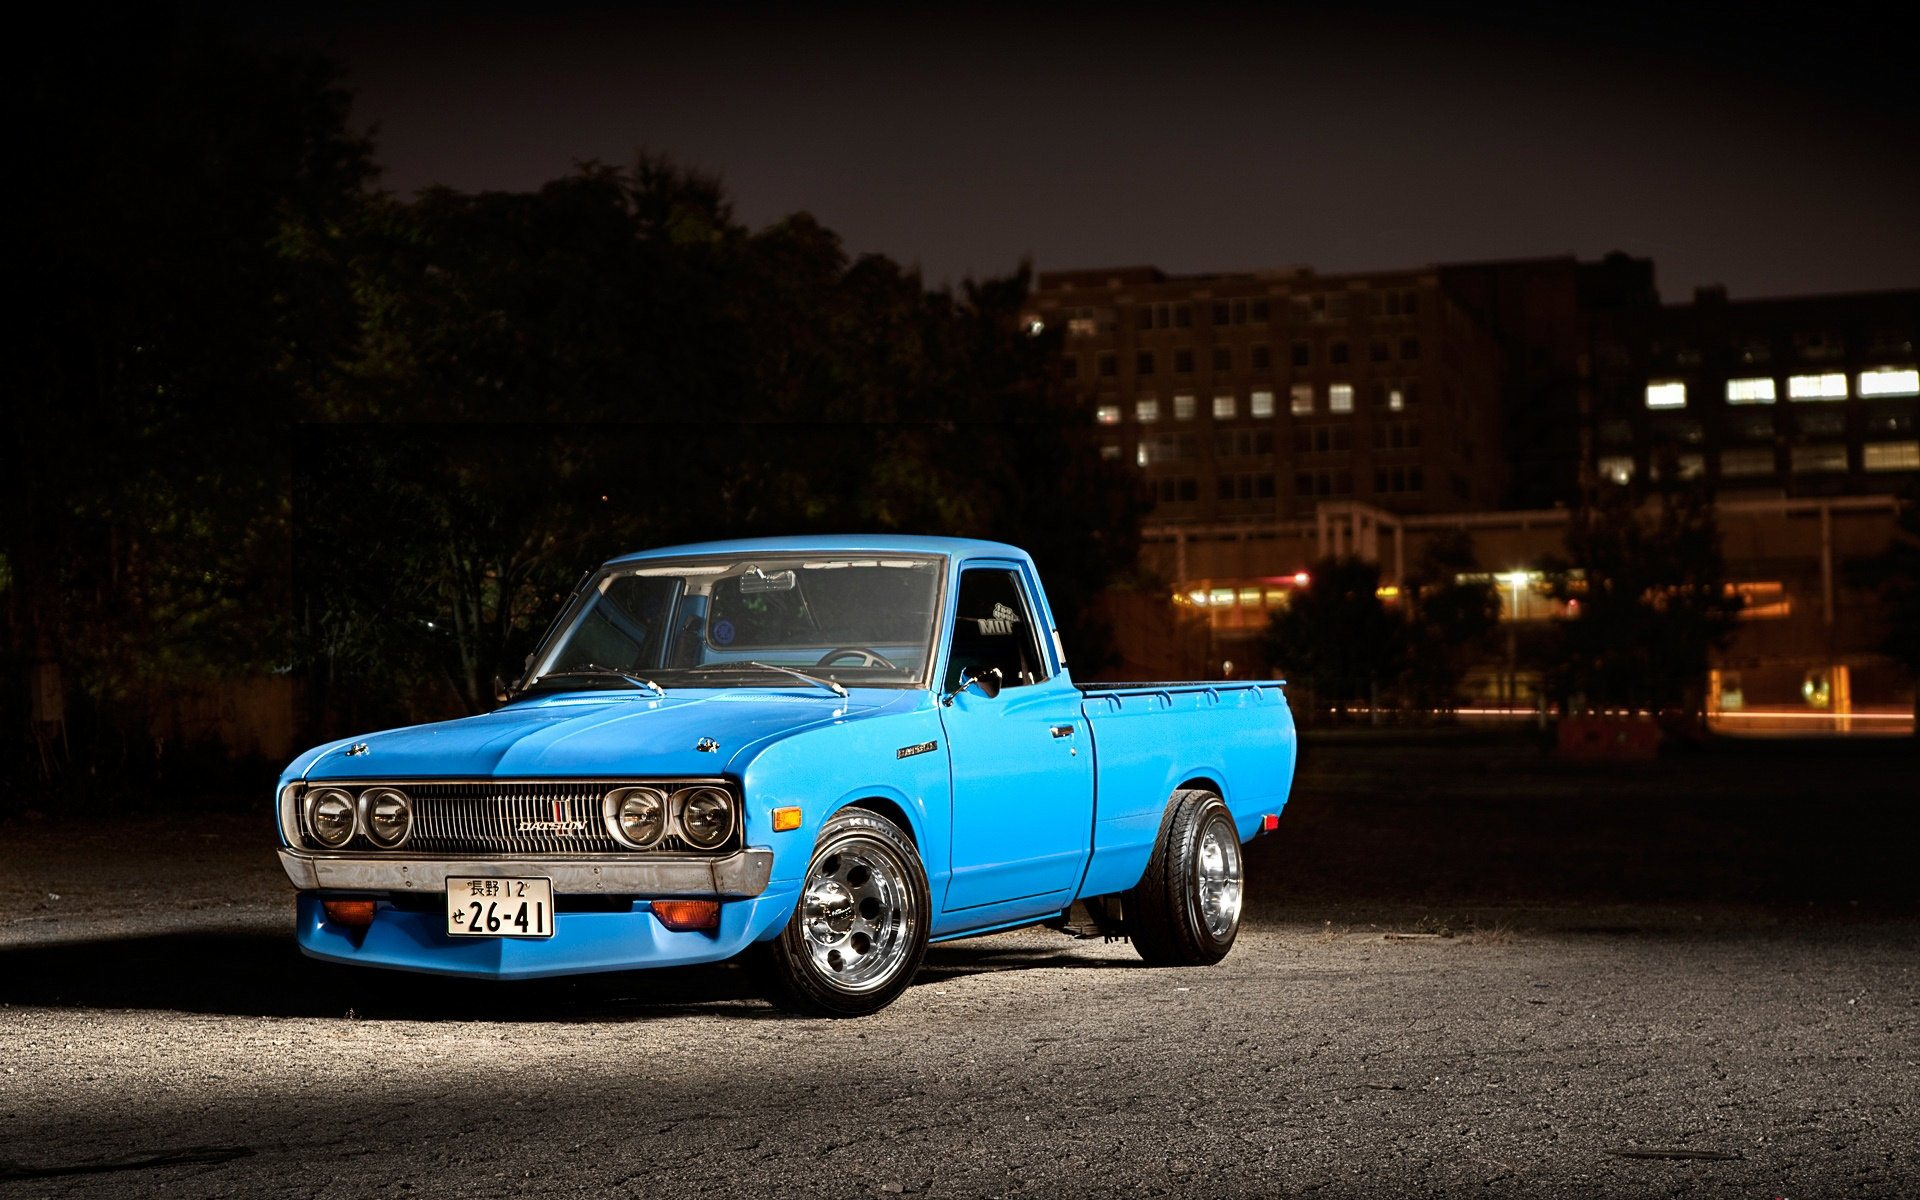 datsun 620 wallpaper background